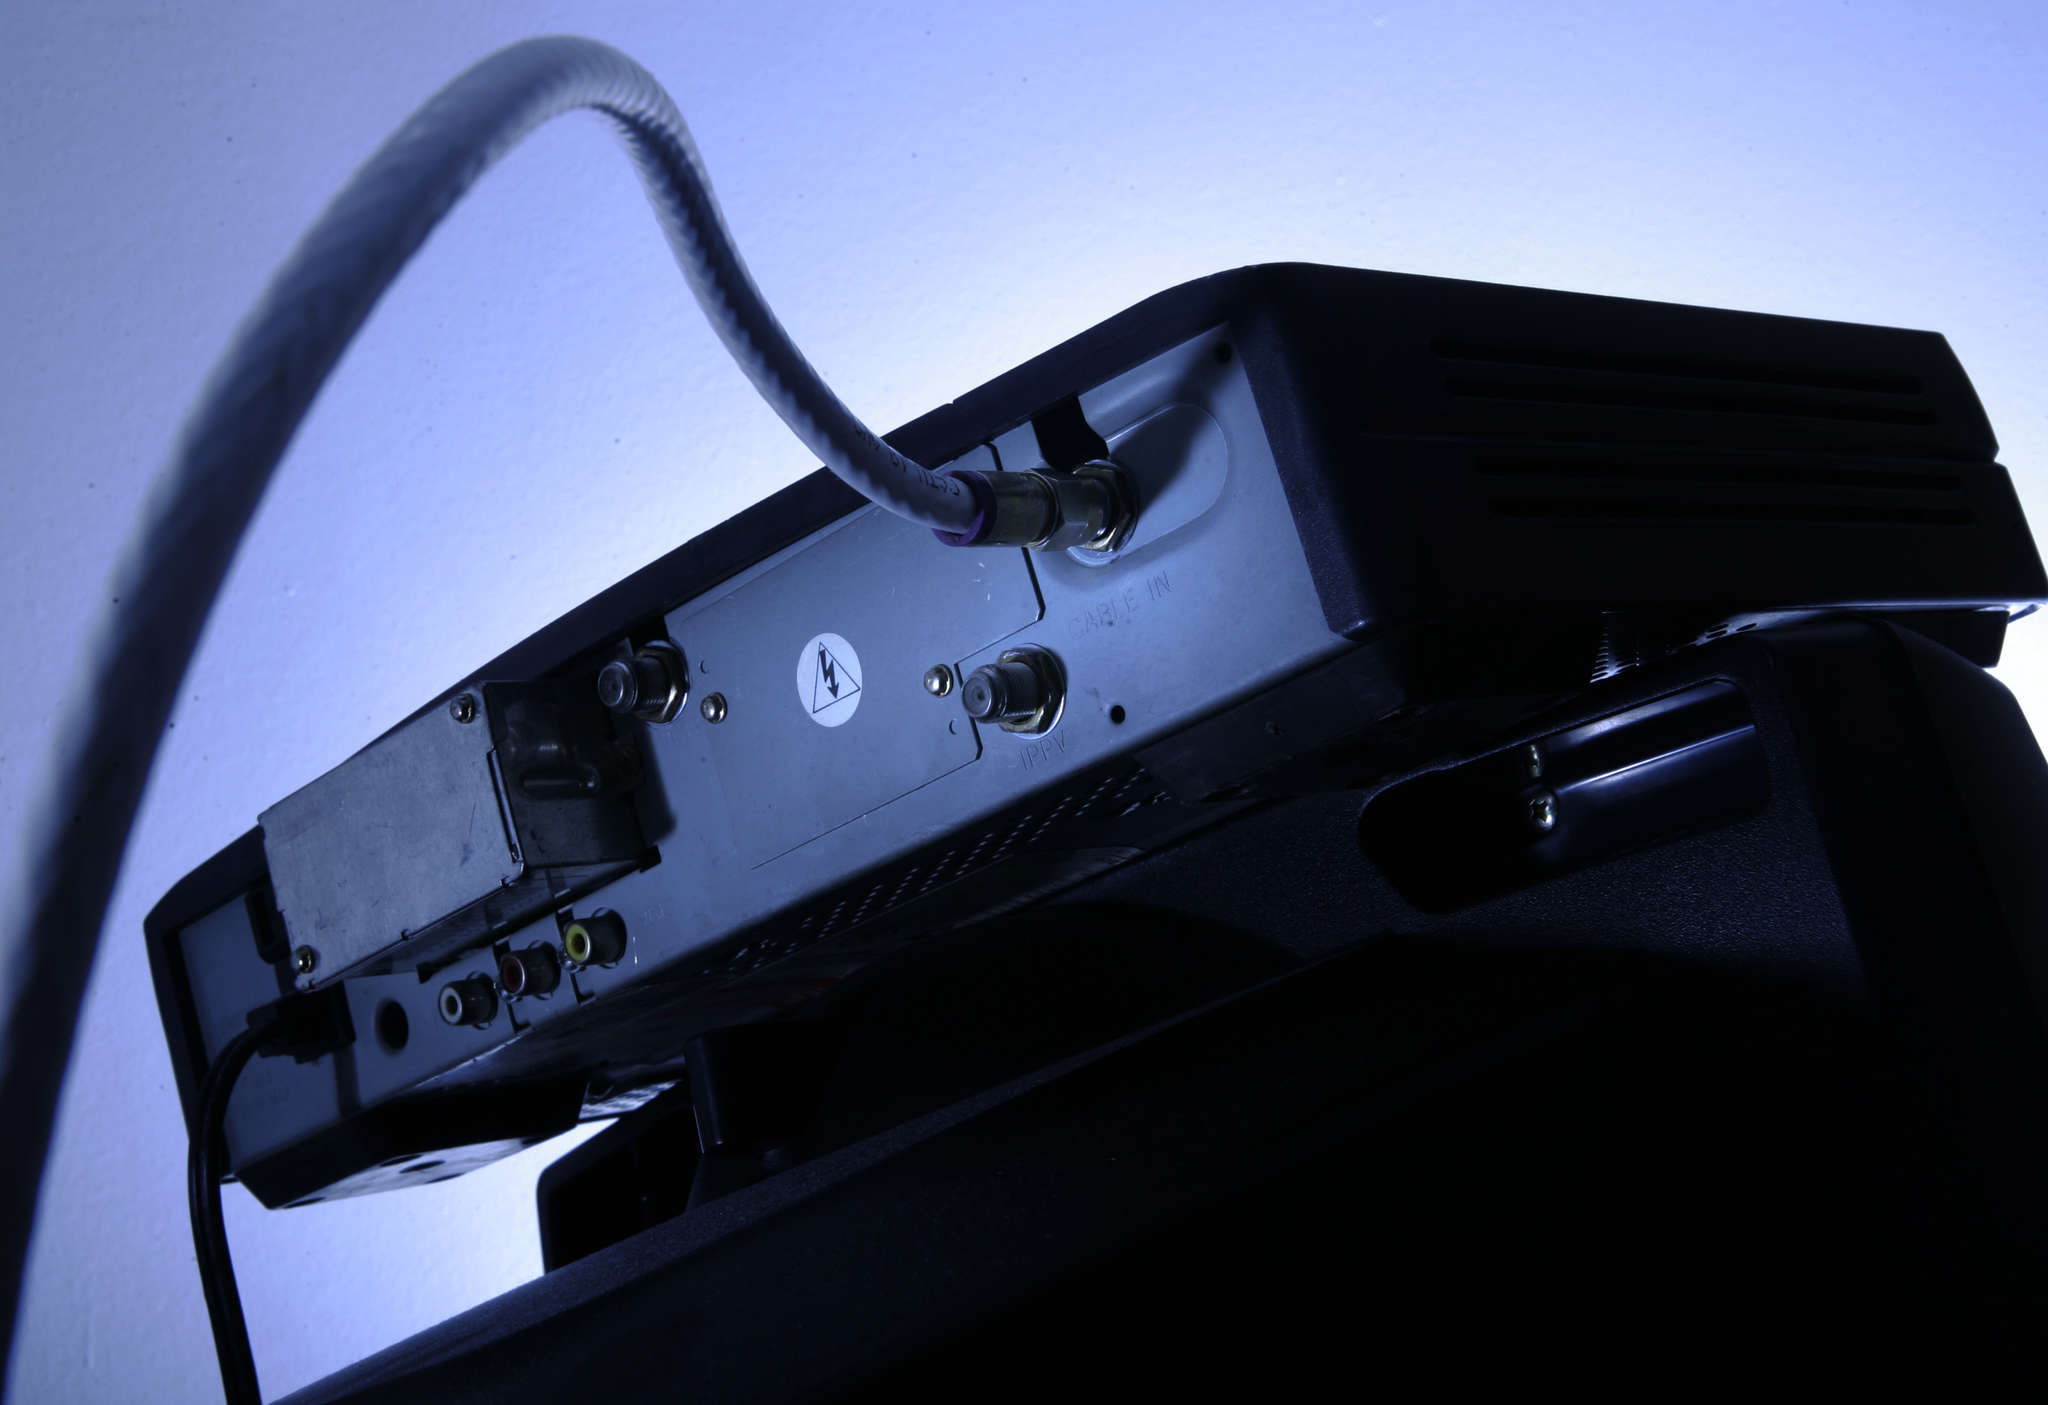 Consumers could be freed from having to rent set-top boxes such as this one.